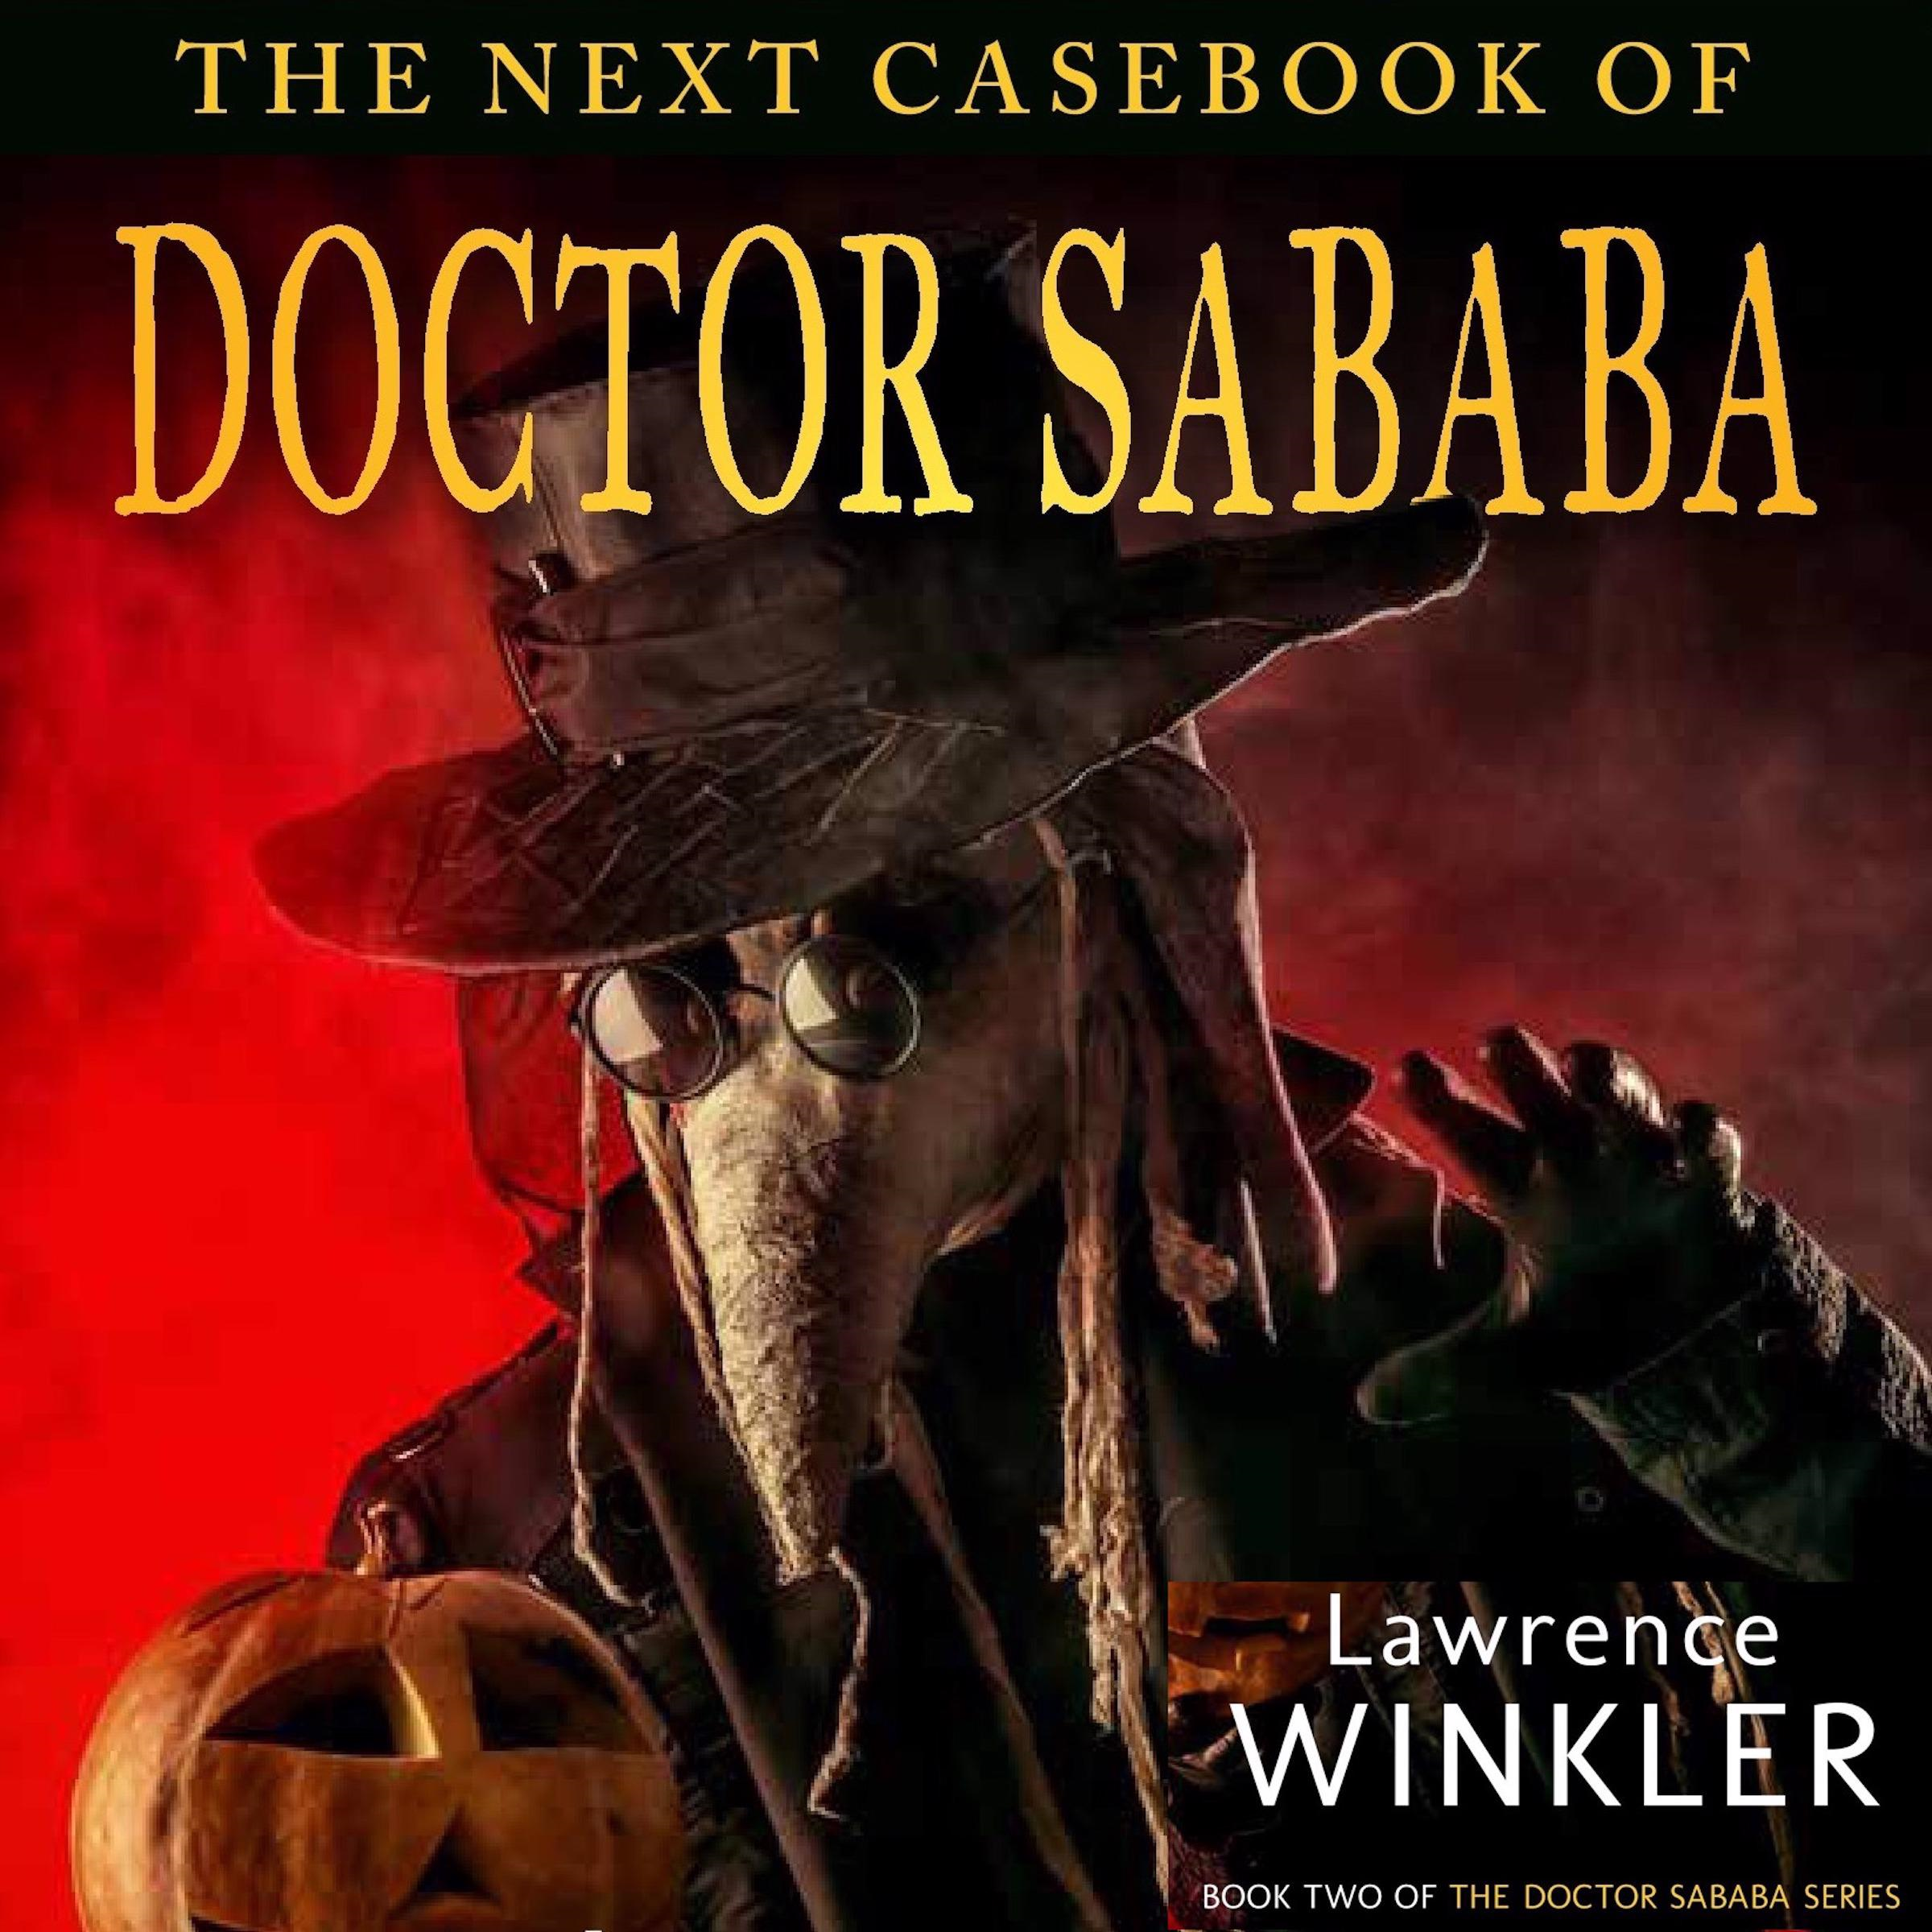 The Next Casebook of Doctor Sababa